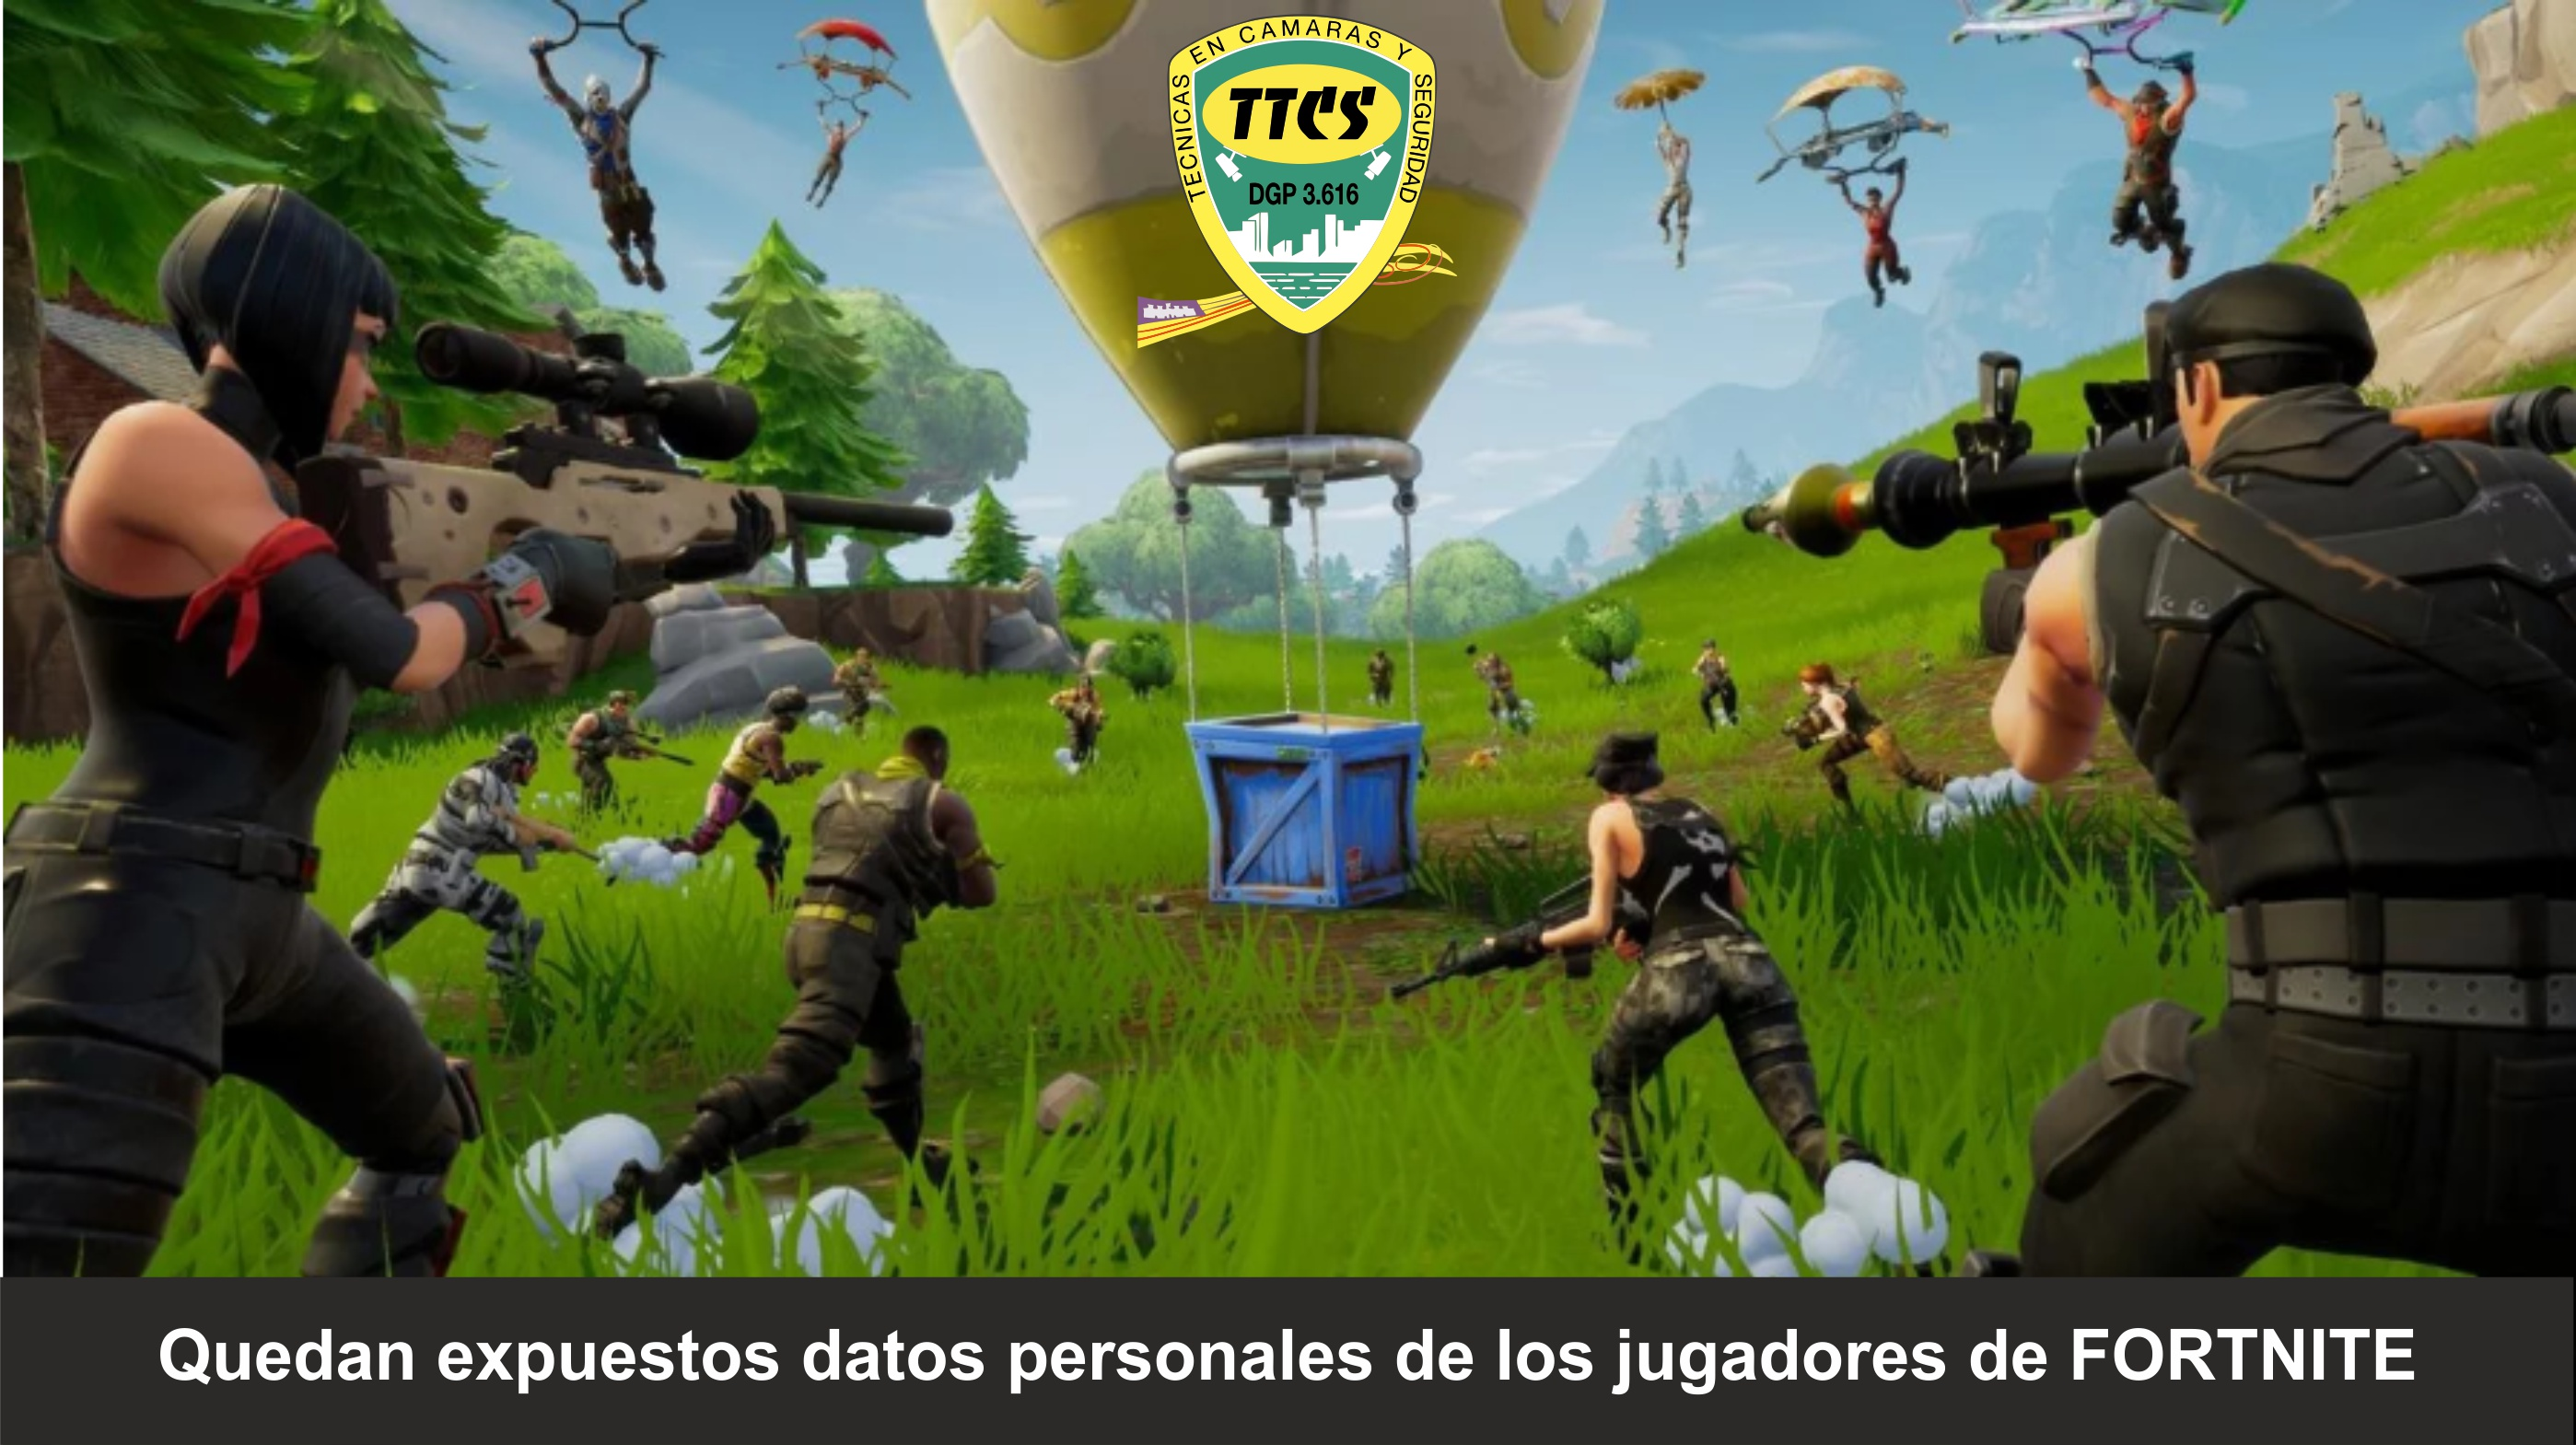 FORNITE DATOS DESCUBIERTOS